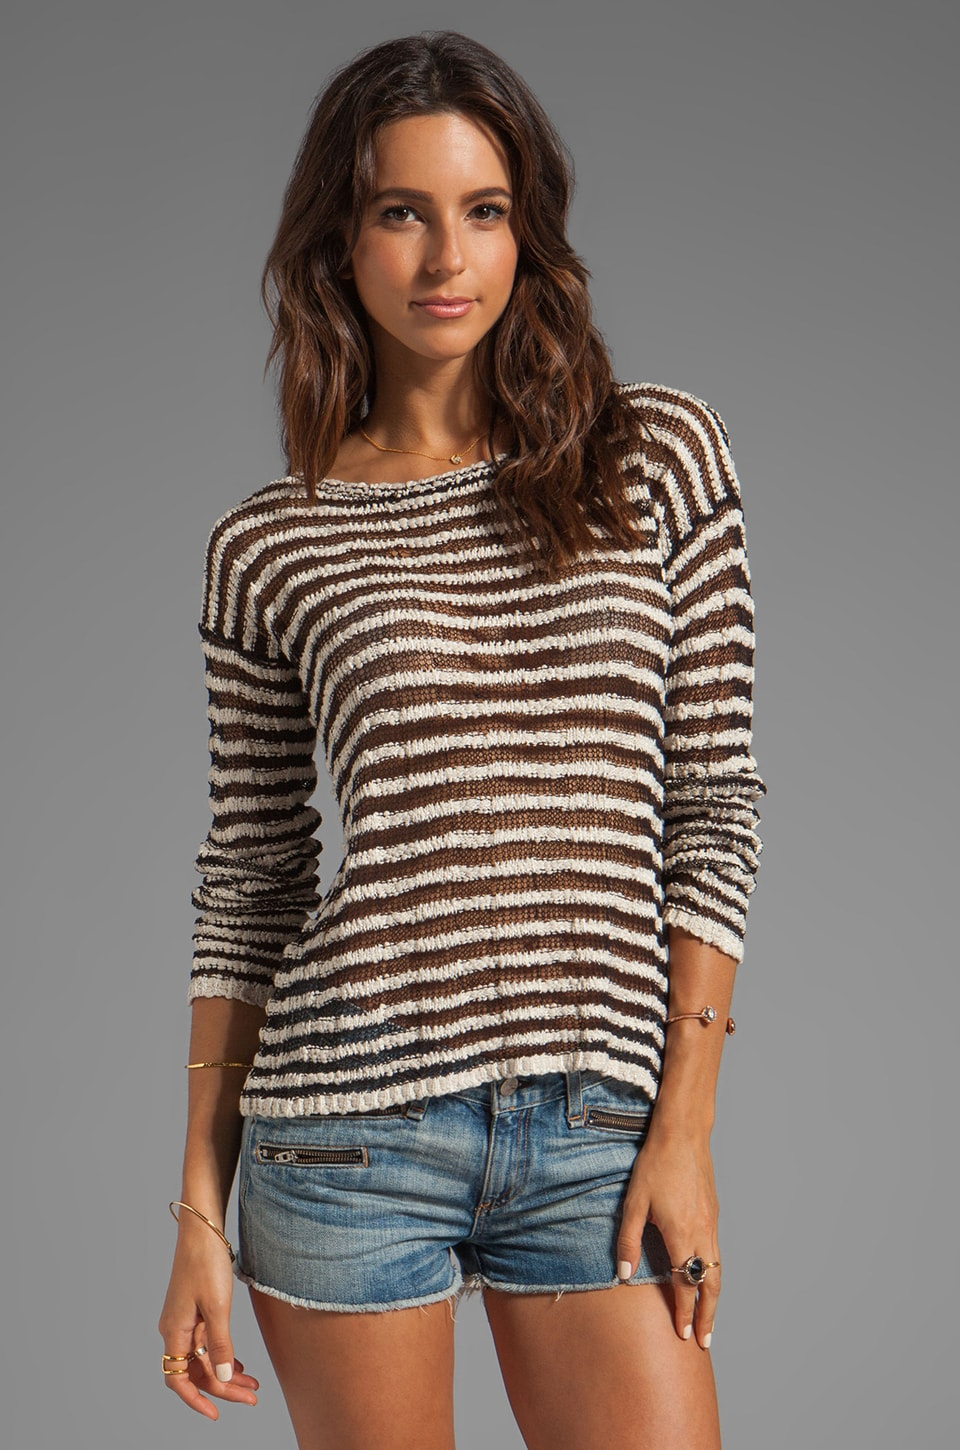 Alice + Olivia Multi Yarn Stripe Ethan Boxy Sweater in Cream/Black